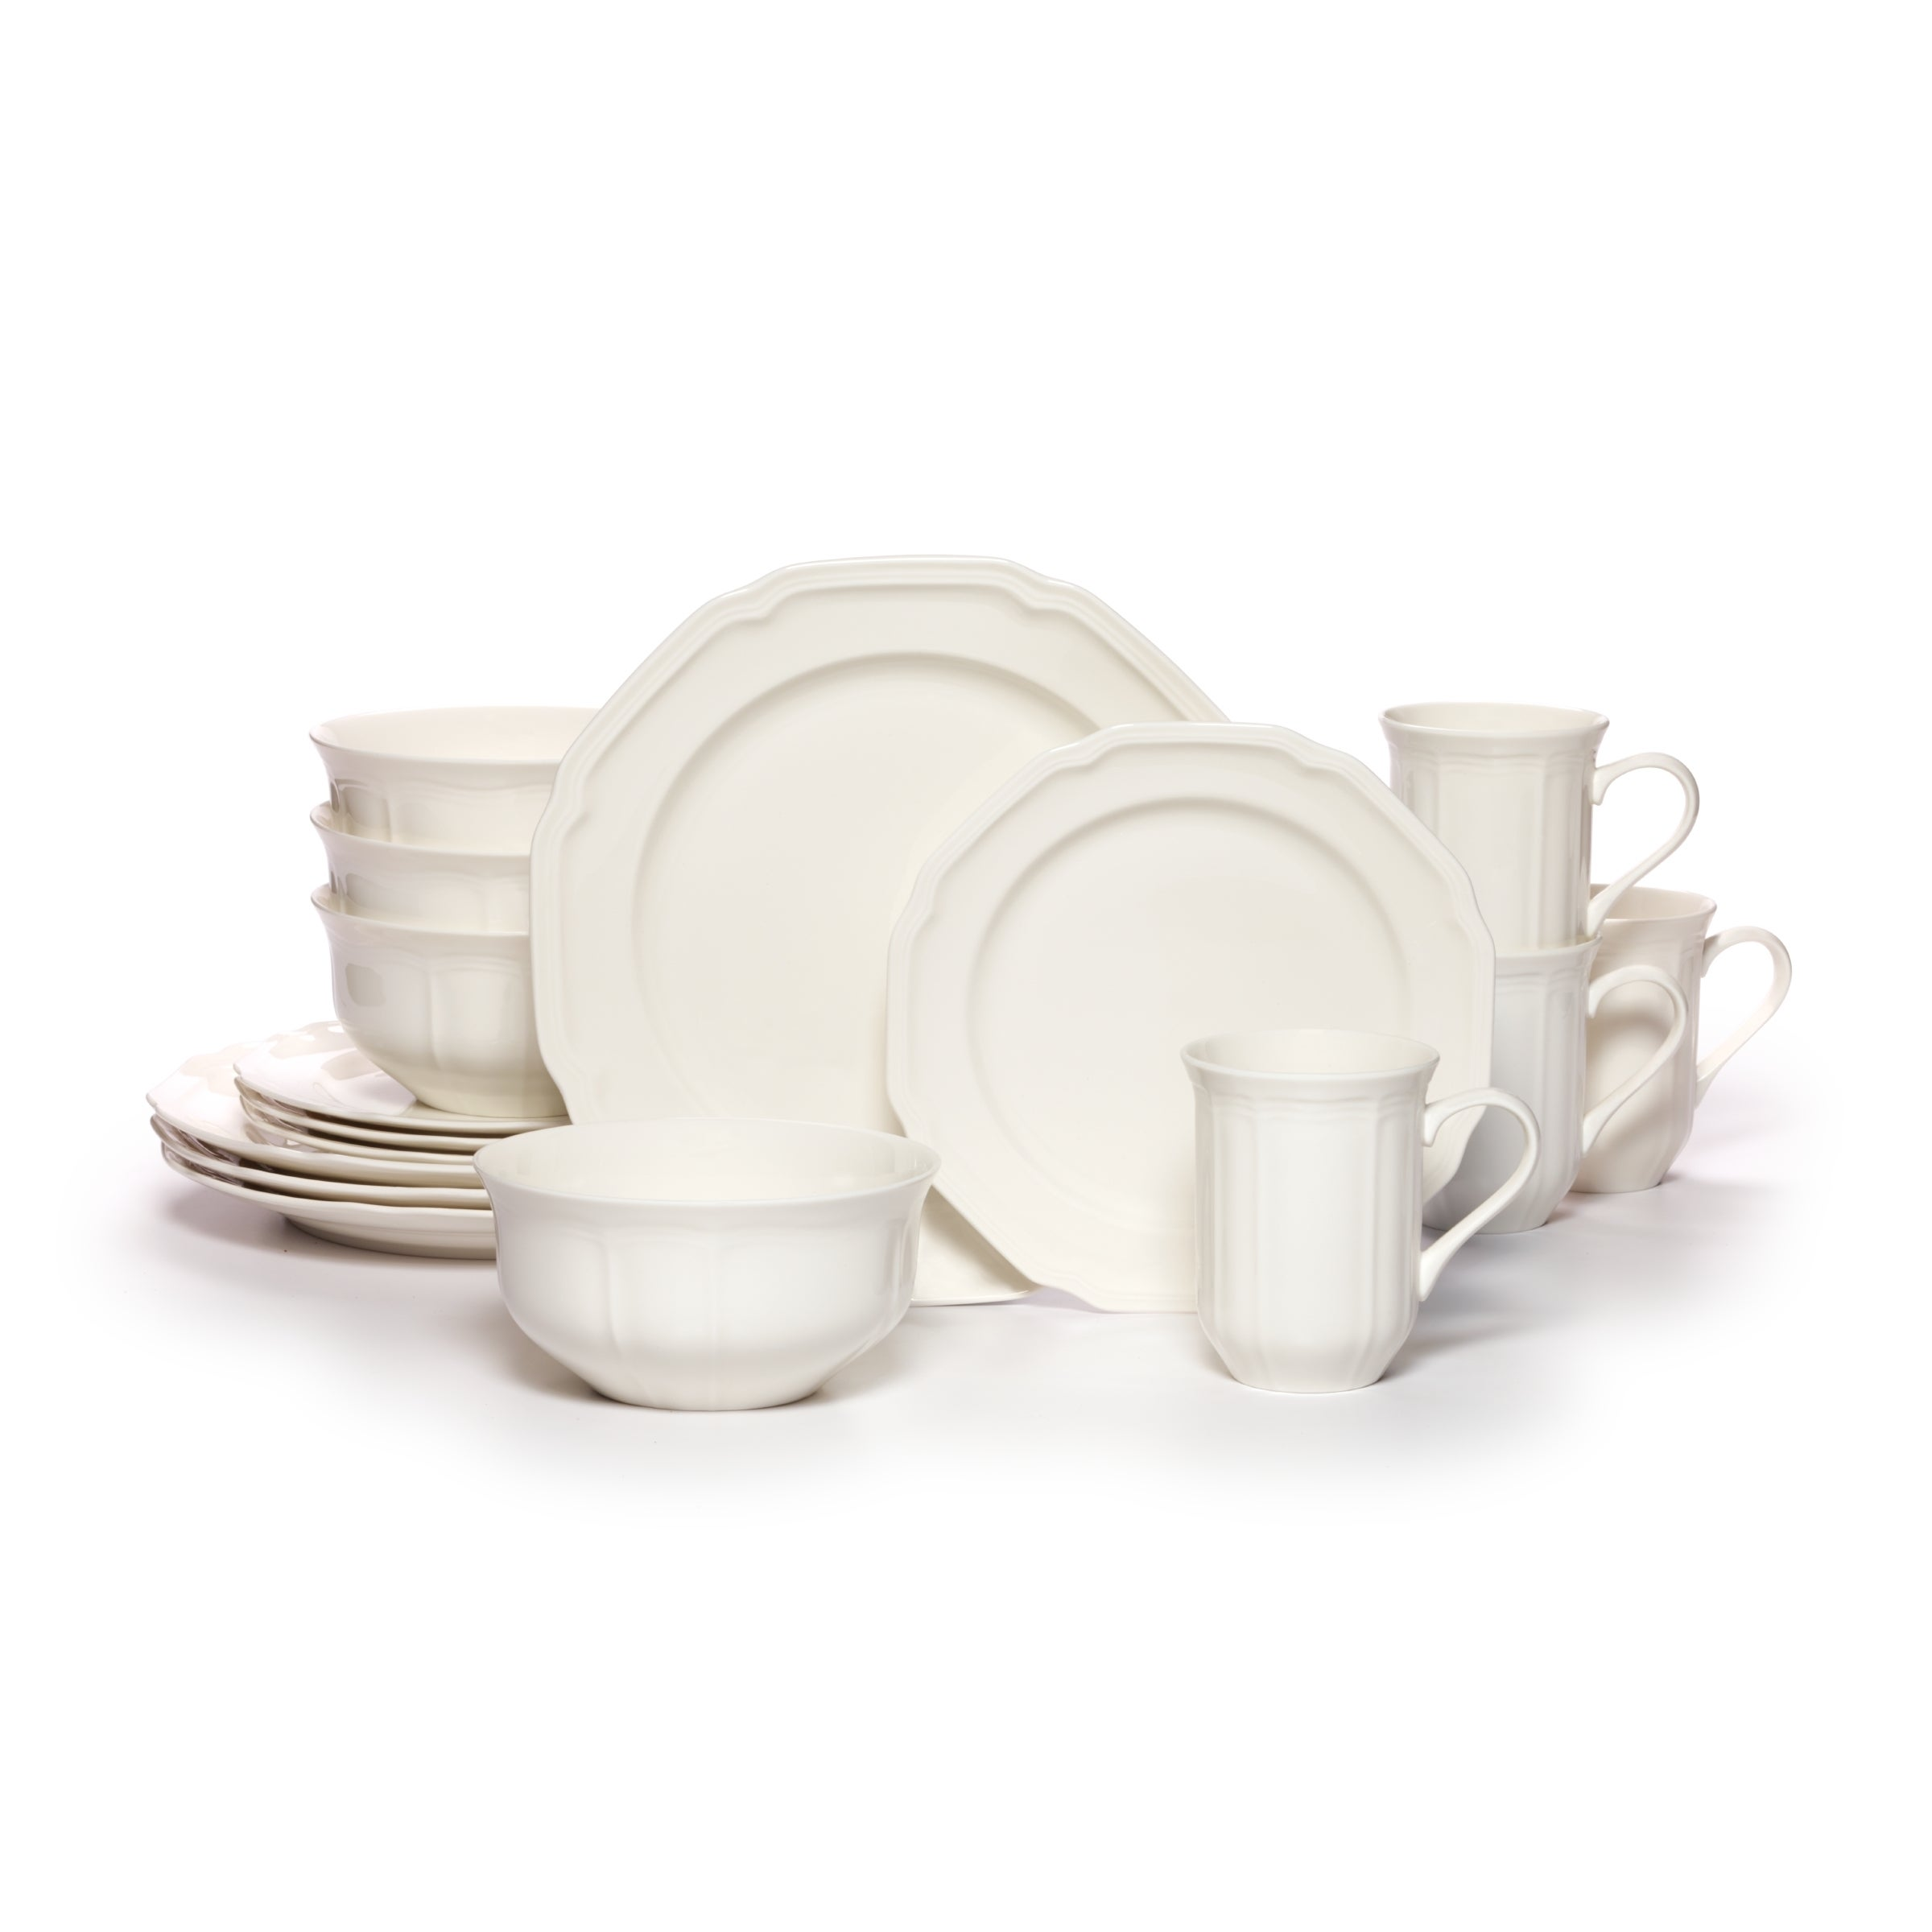 Mikasa Round Antique White Porcelain 16-piece Dinnerware Set - Free Shipping Today - Overstock - 18958479  sc 1 st  Overstock & Mikasa Round Antique White Porcelain 16-piece Dinnerware Set - Free ...